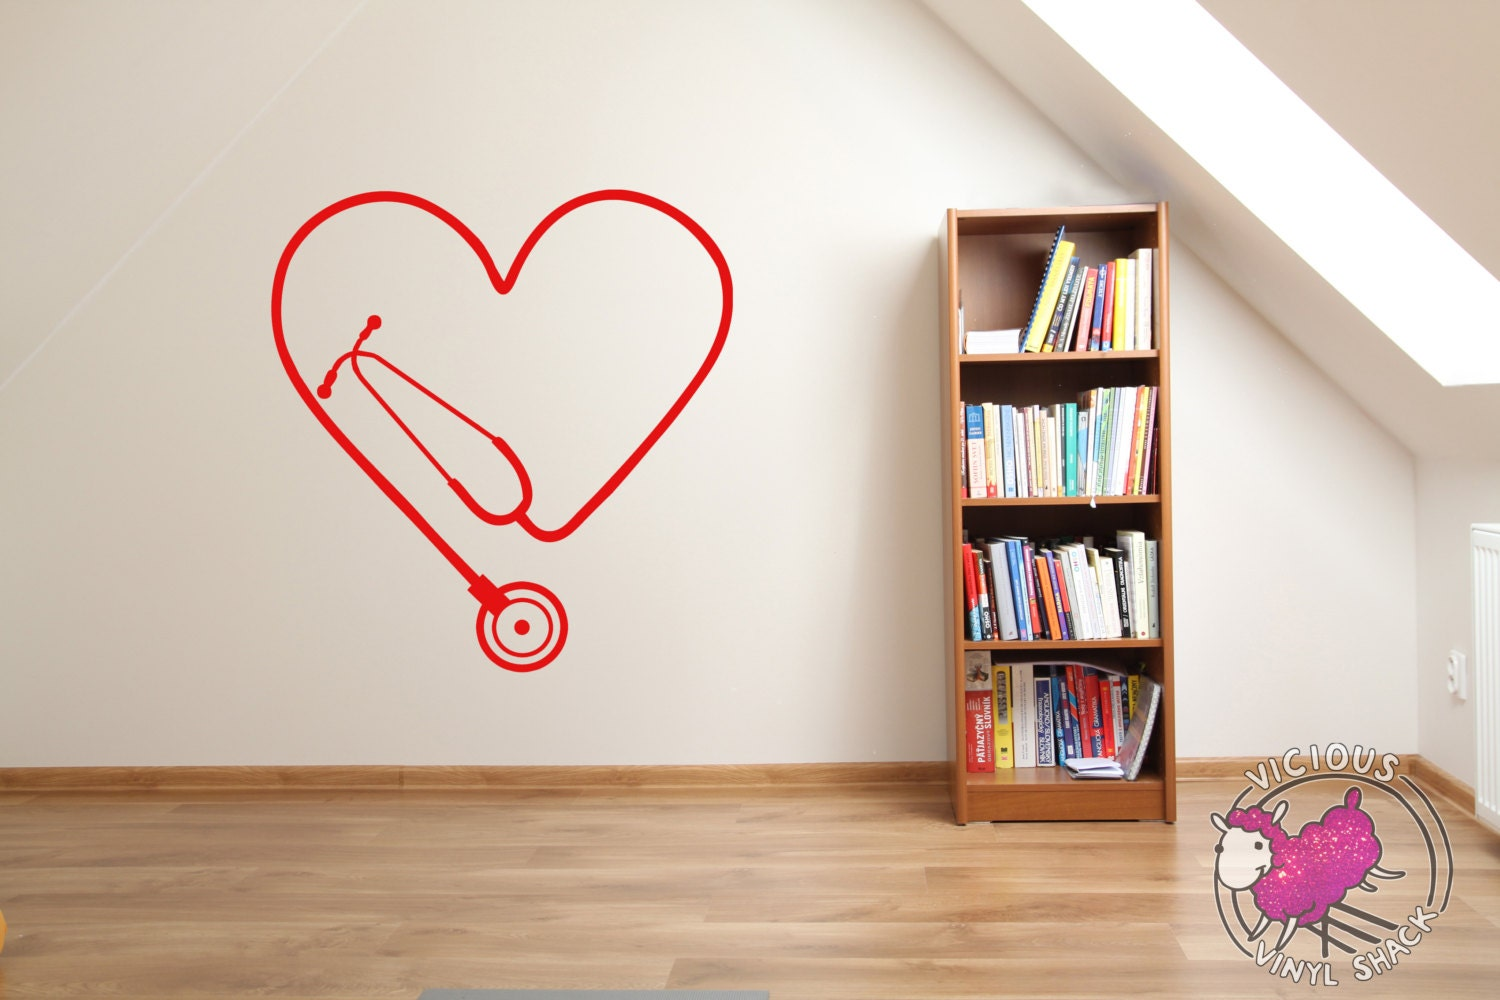 stethoscope heart cutout vinyl wall decal stickers multiple zoom